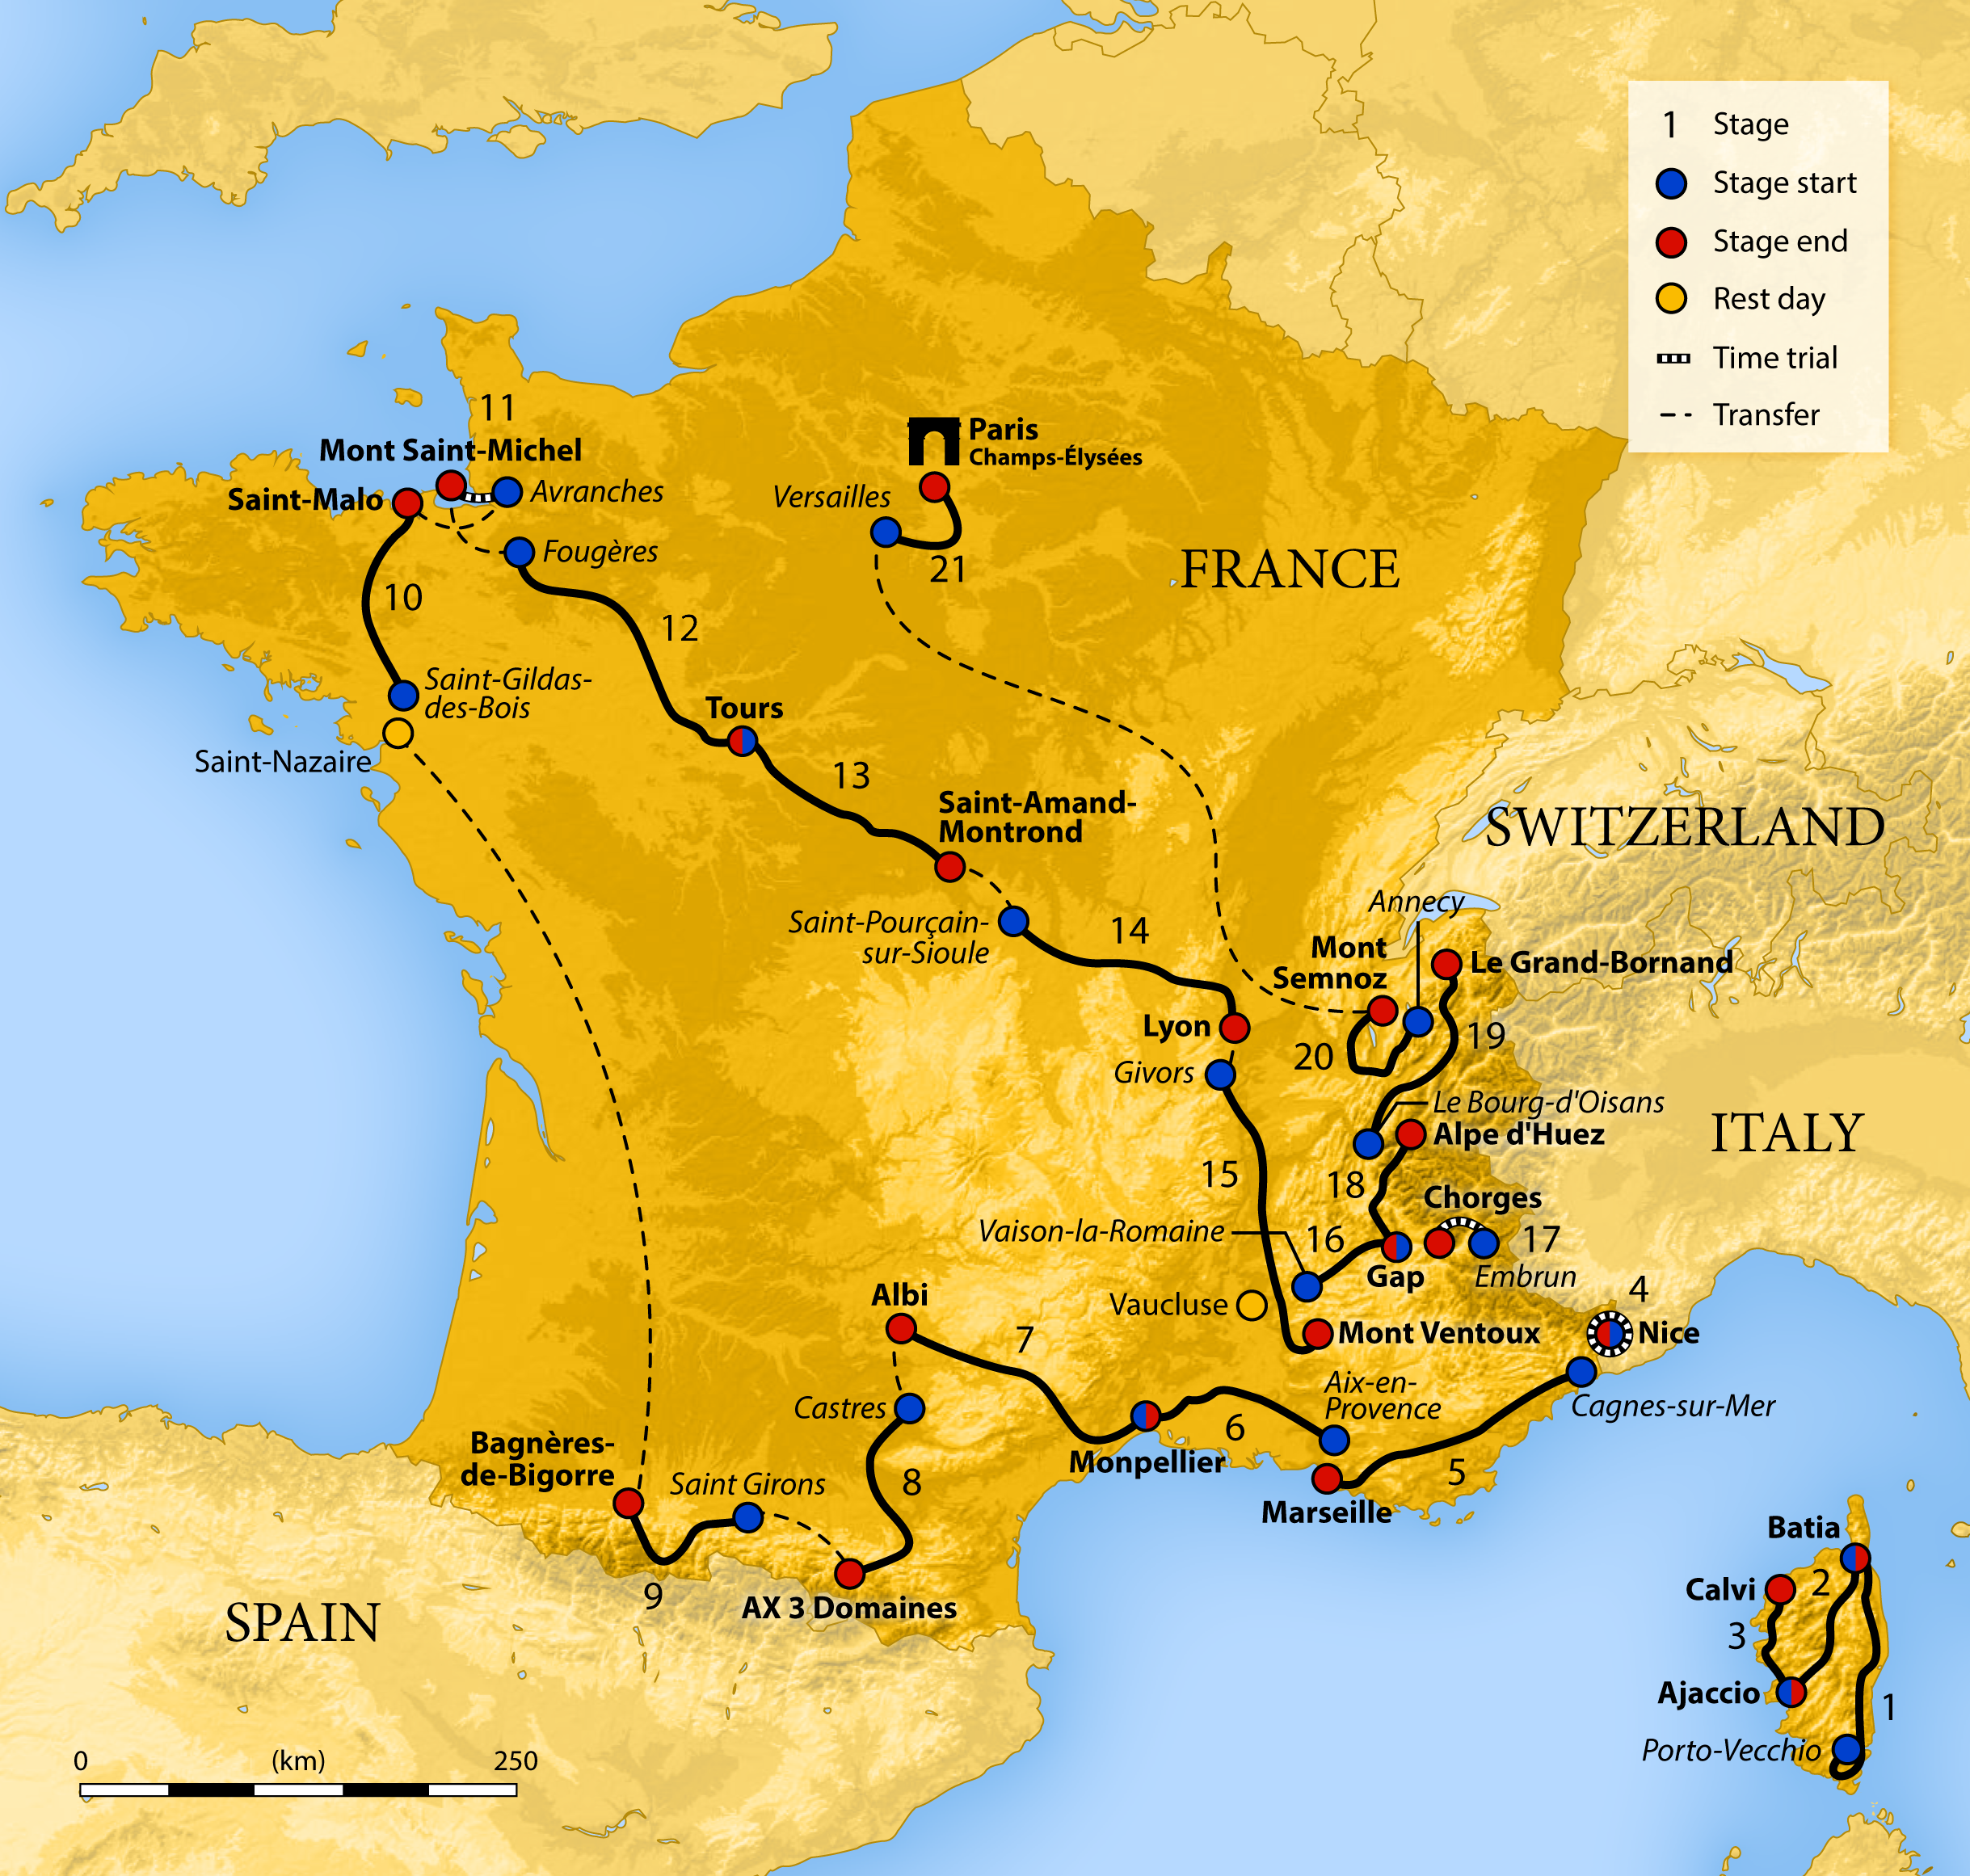 France Map Png.File 2013 Tour De France Map Png Wikimedia Commons